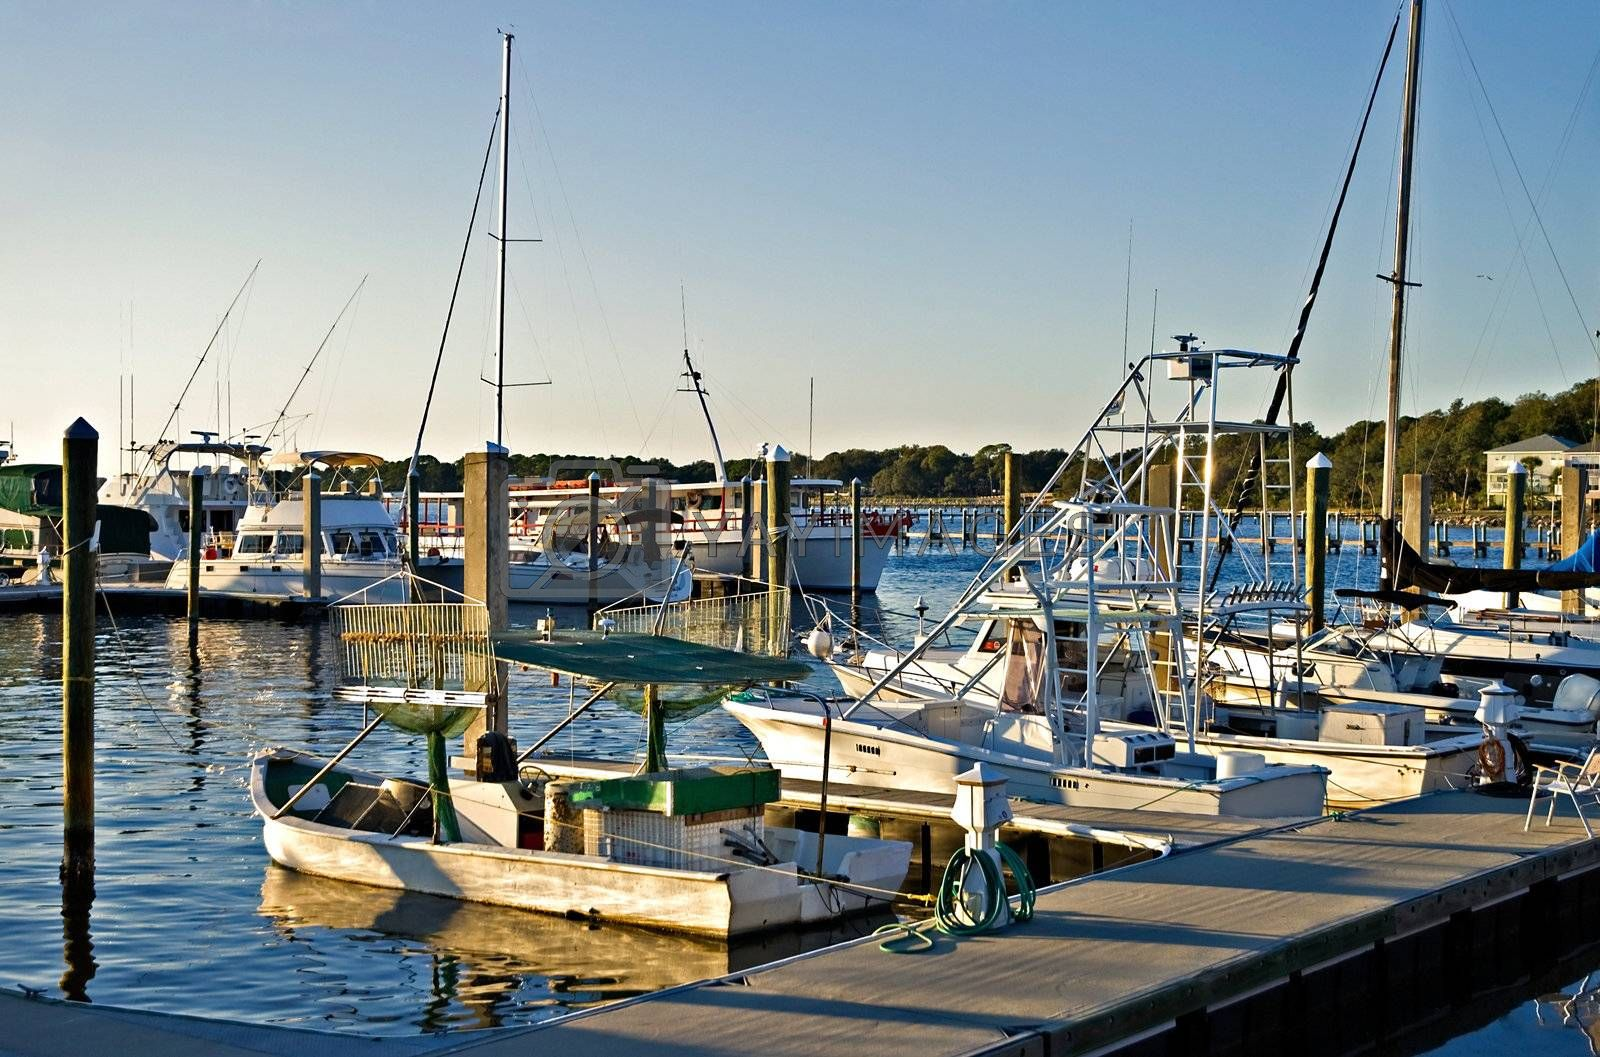 Many different types of boats docked at the end of the day.